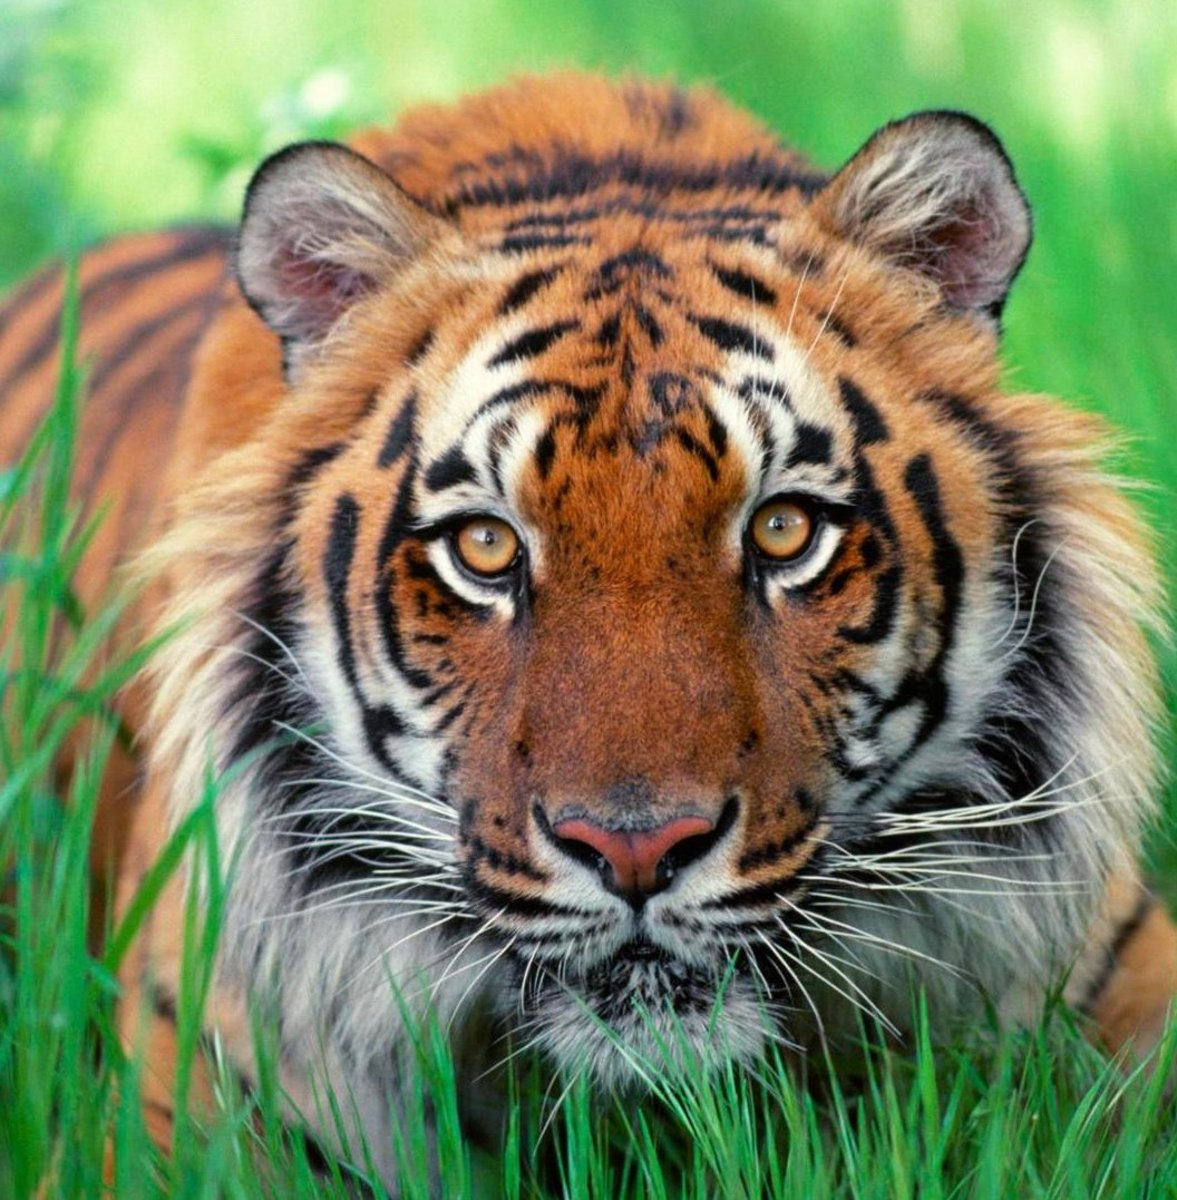 Tigers in Texas | HubPages